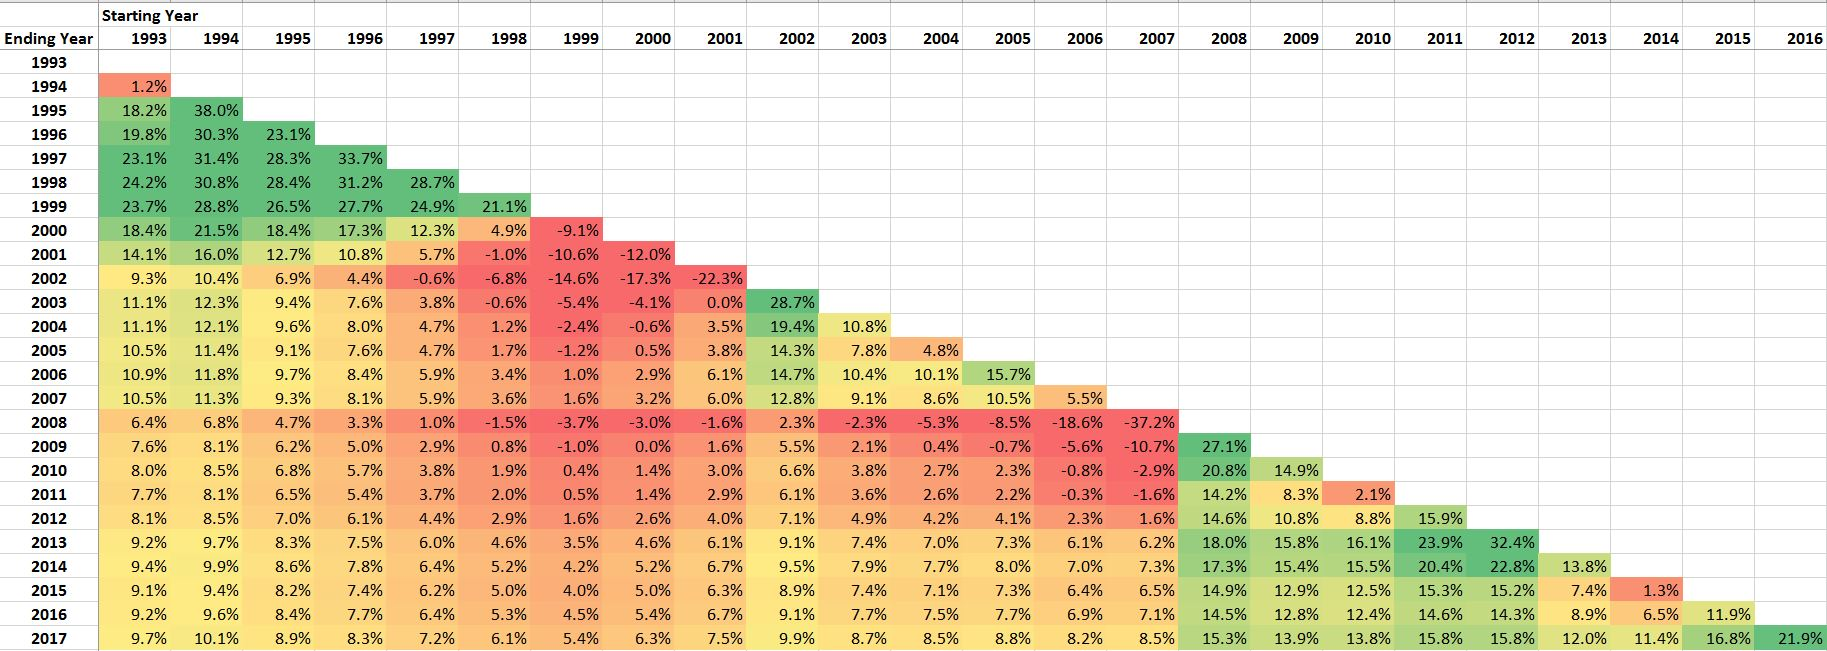 6 1 Historical returns and risks – Mindfully Investing